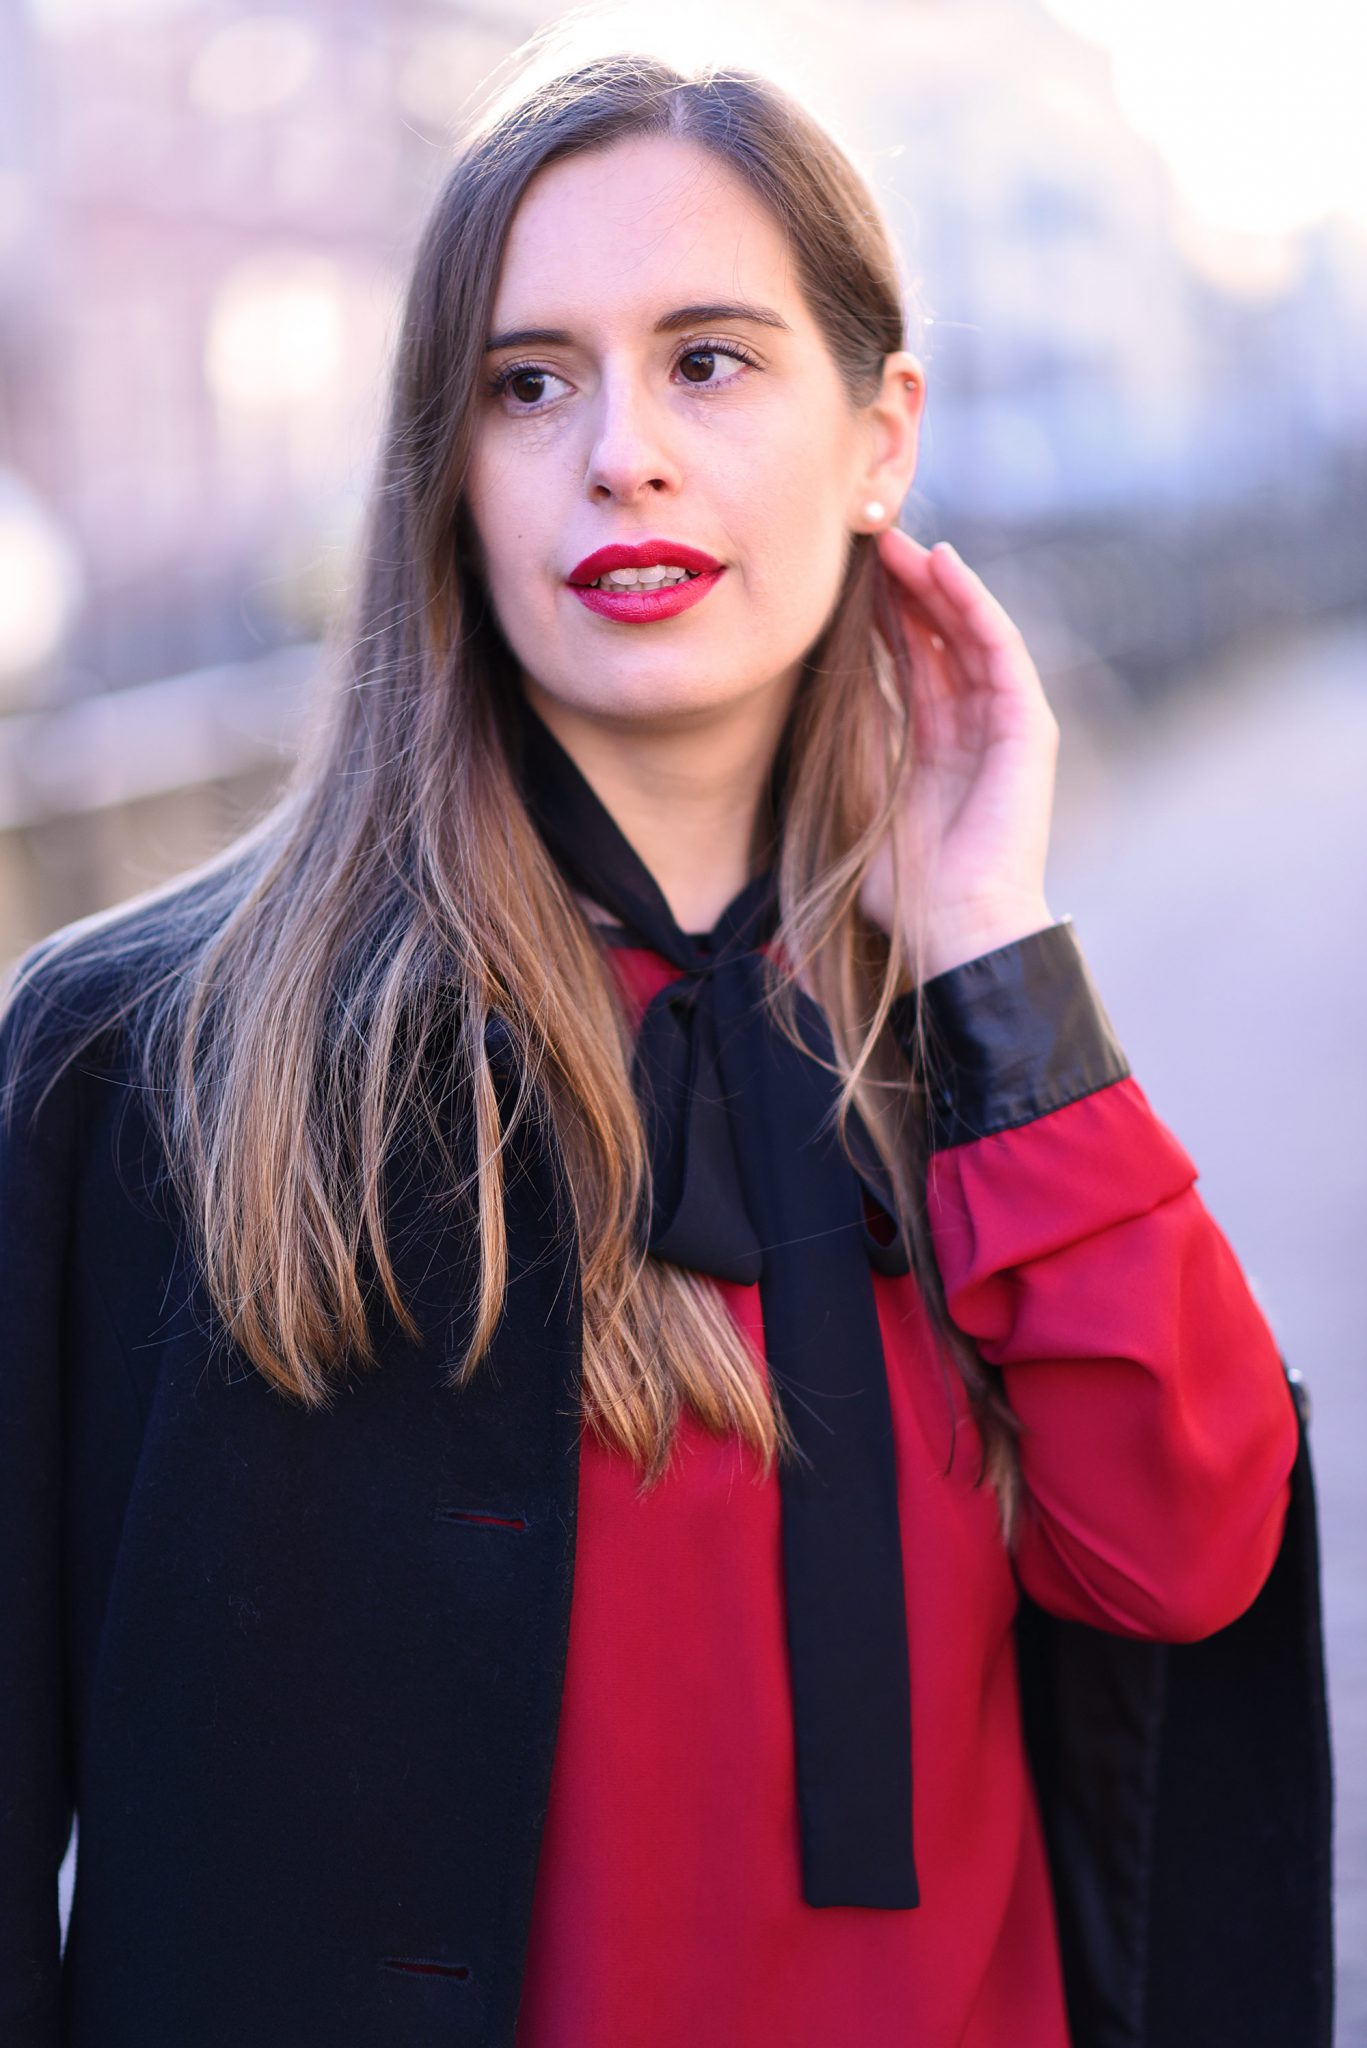 red-blouse-christmas-outfit-inspiration-thepetitecat